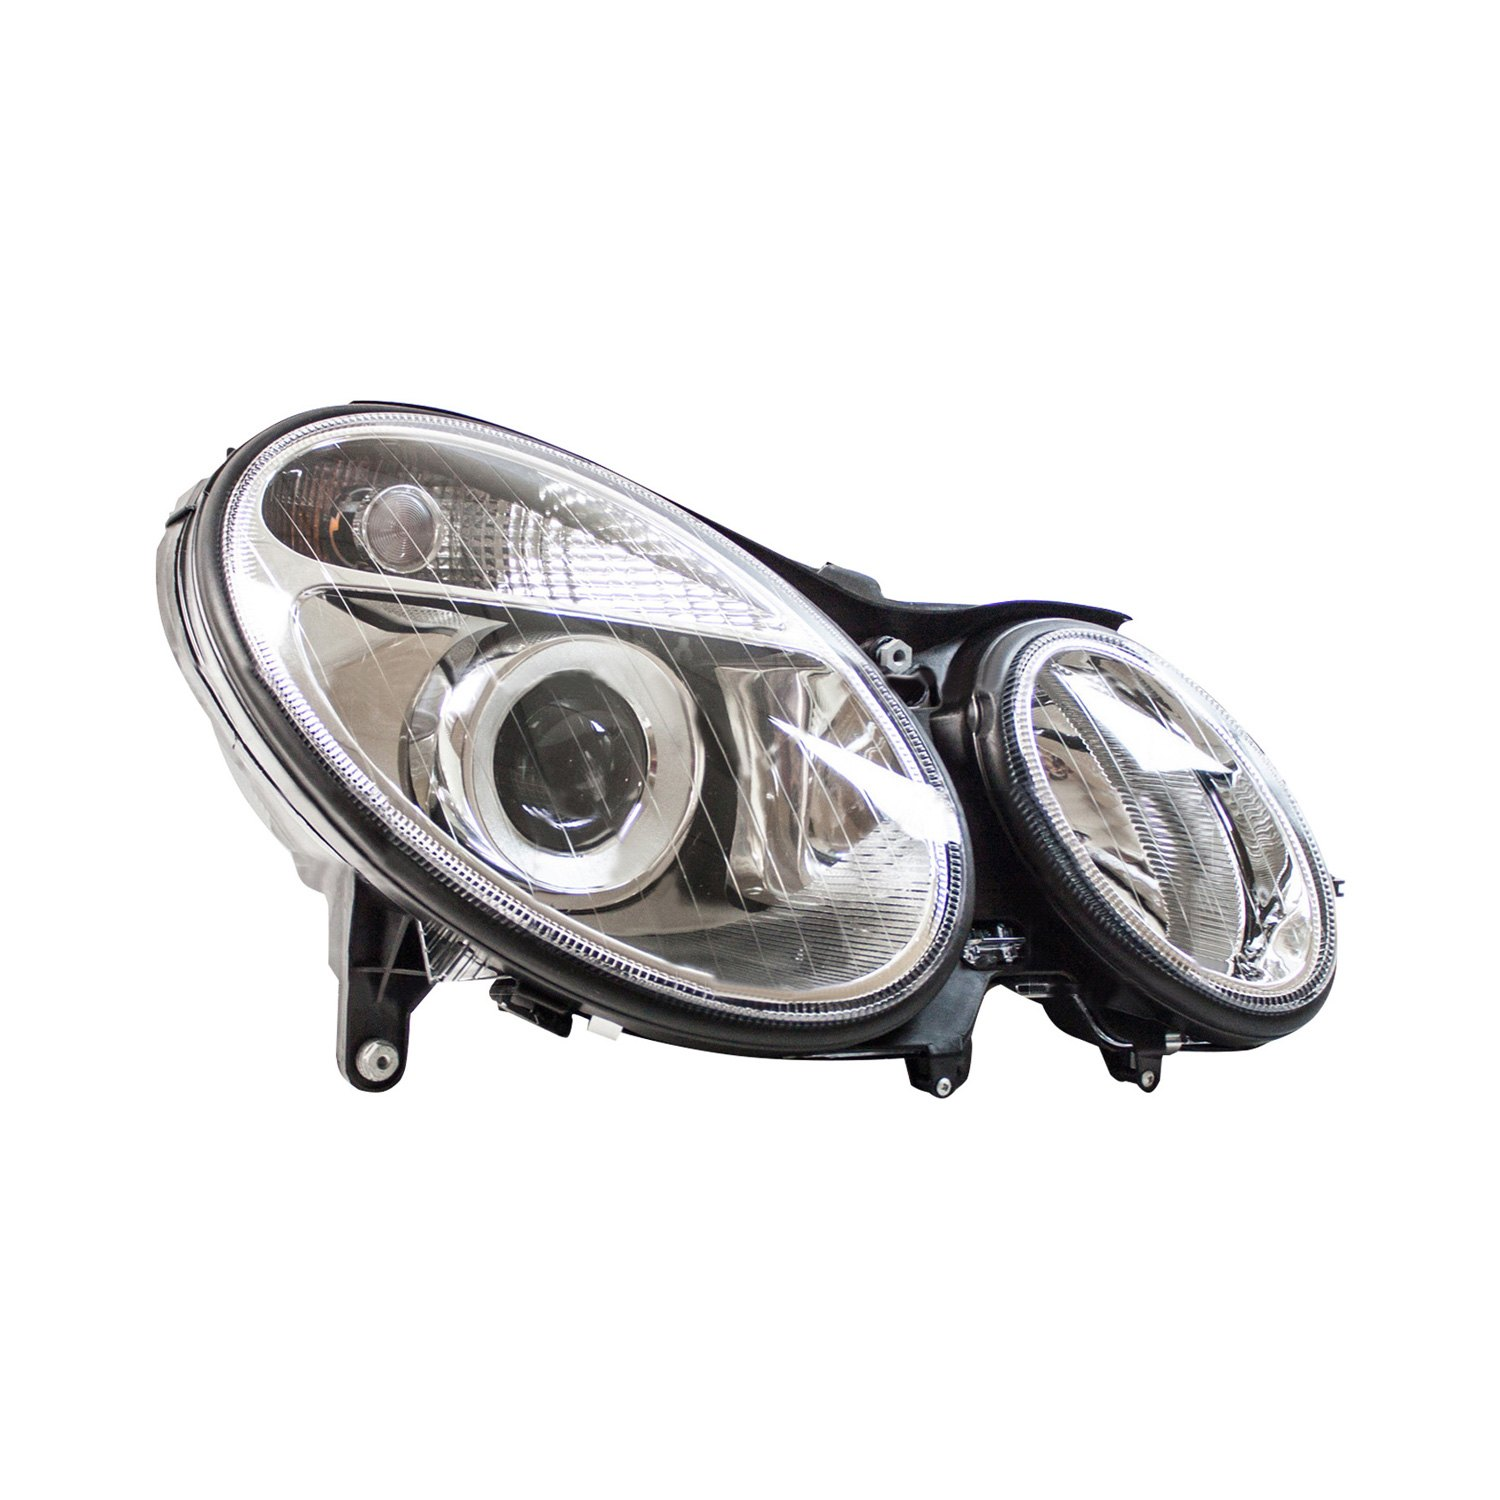 Tyc mercedes e320 e500 e55 amg sedan with factory for Mercedes benz aftermarket headlights